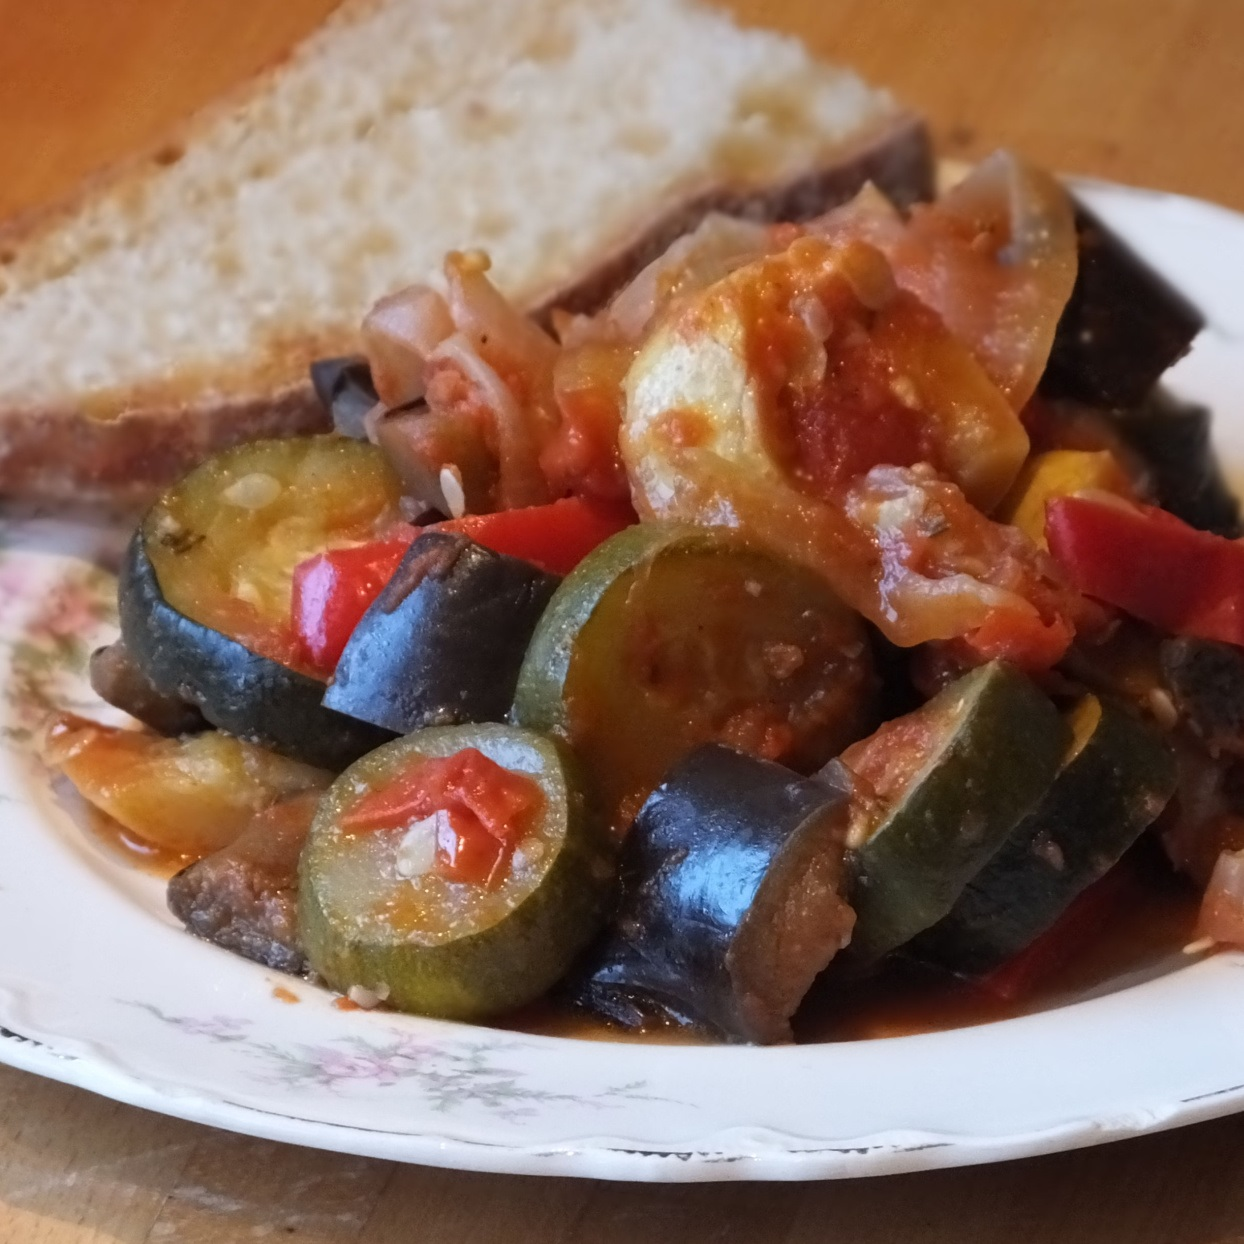 Ratatouille Provencal on a plate with bread